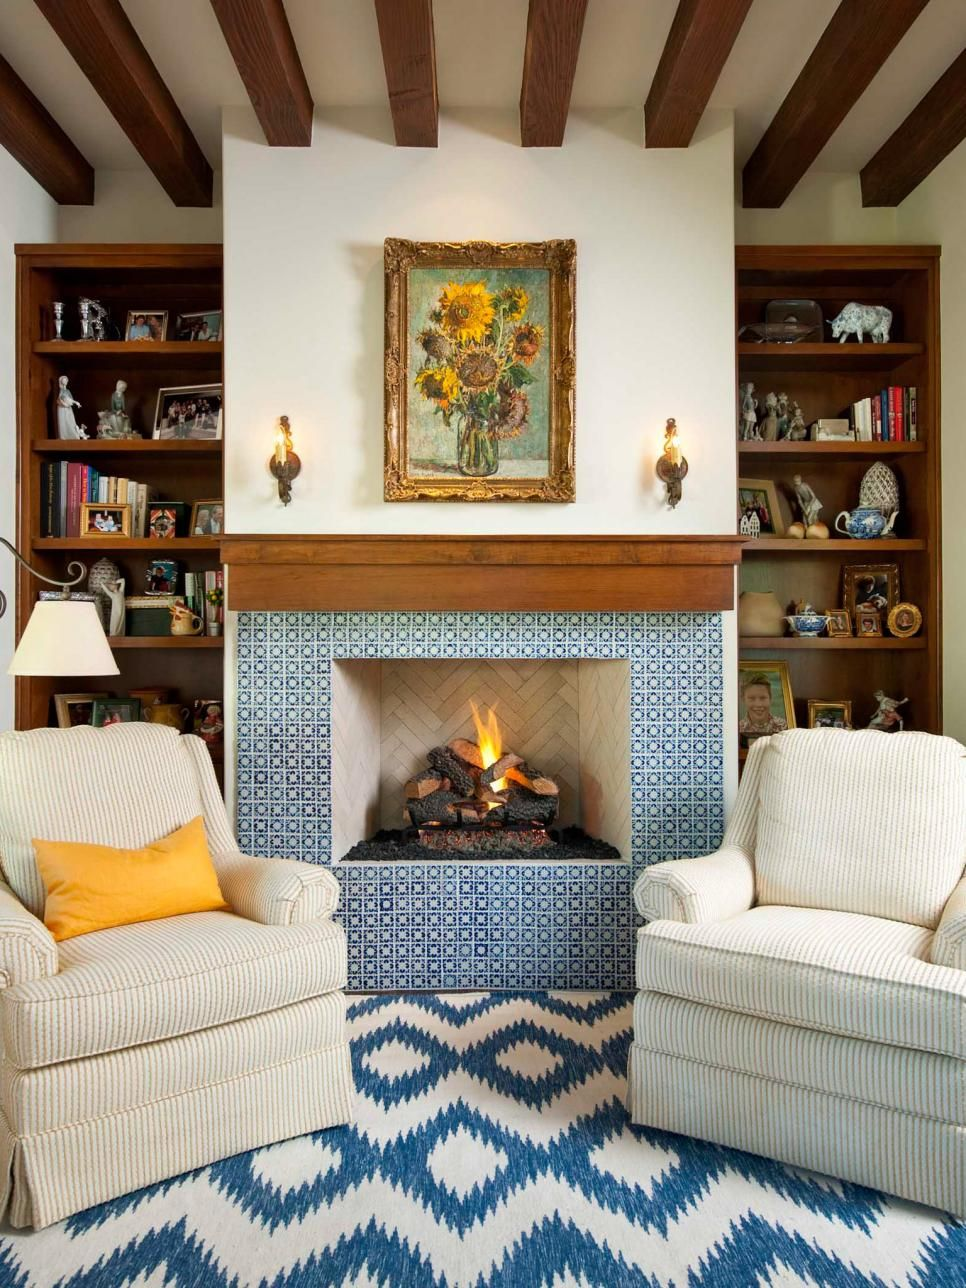 15 Fireplace Remodel Ideas For Any Budget Home Remodeling Fireplaces And Style